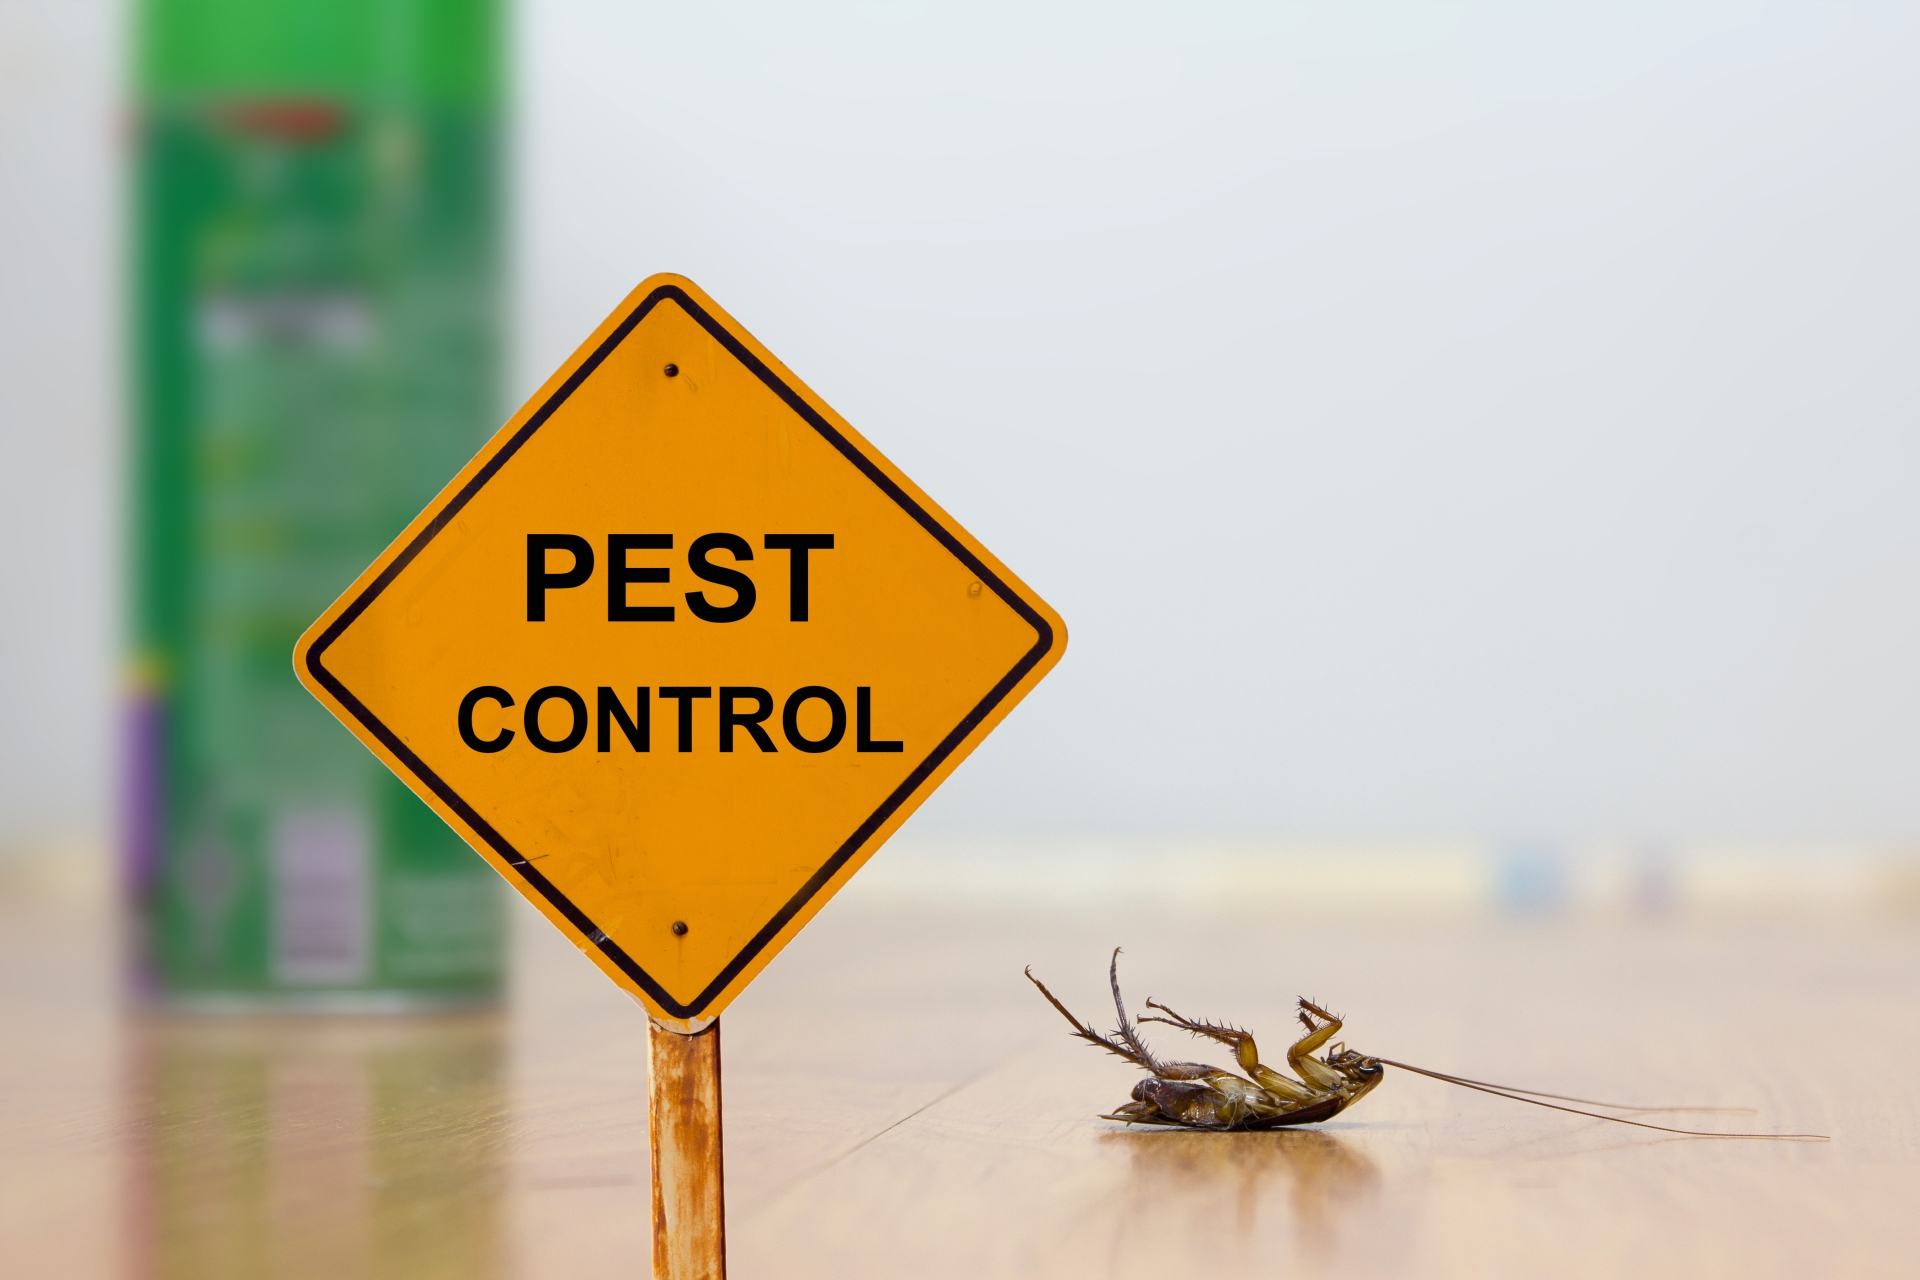 24 Hour Pest Control, Pest Control in Camberwell, SE5. Call Now 020 8166 9746